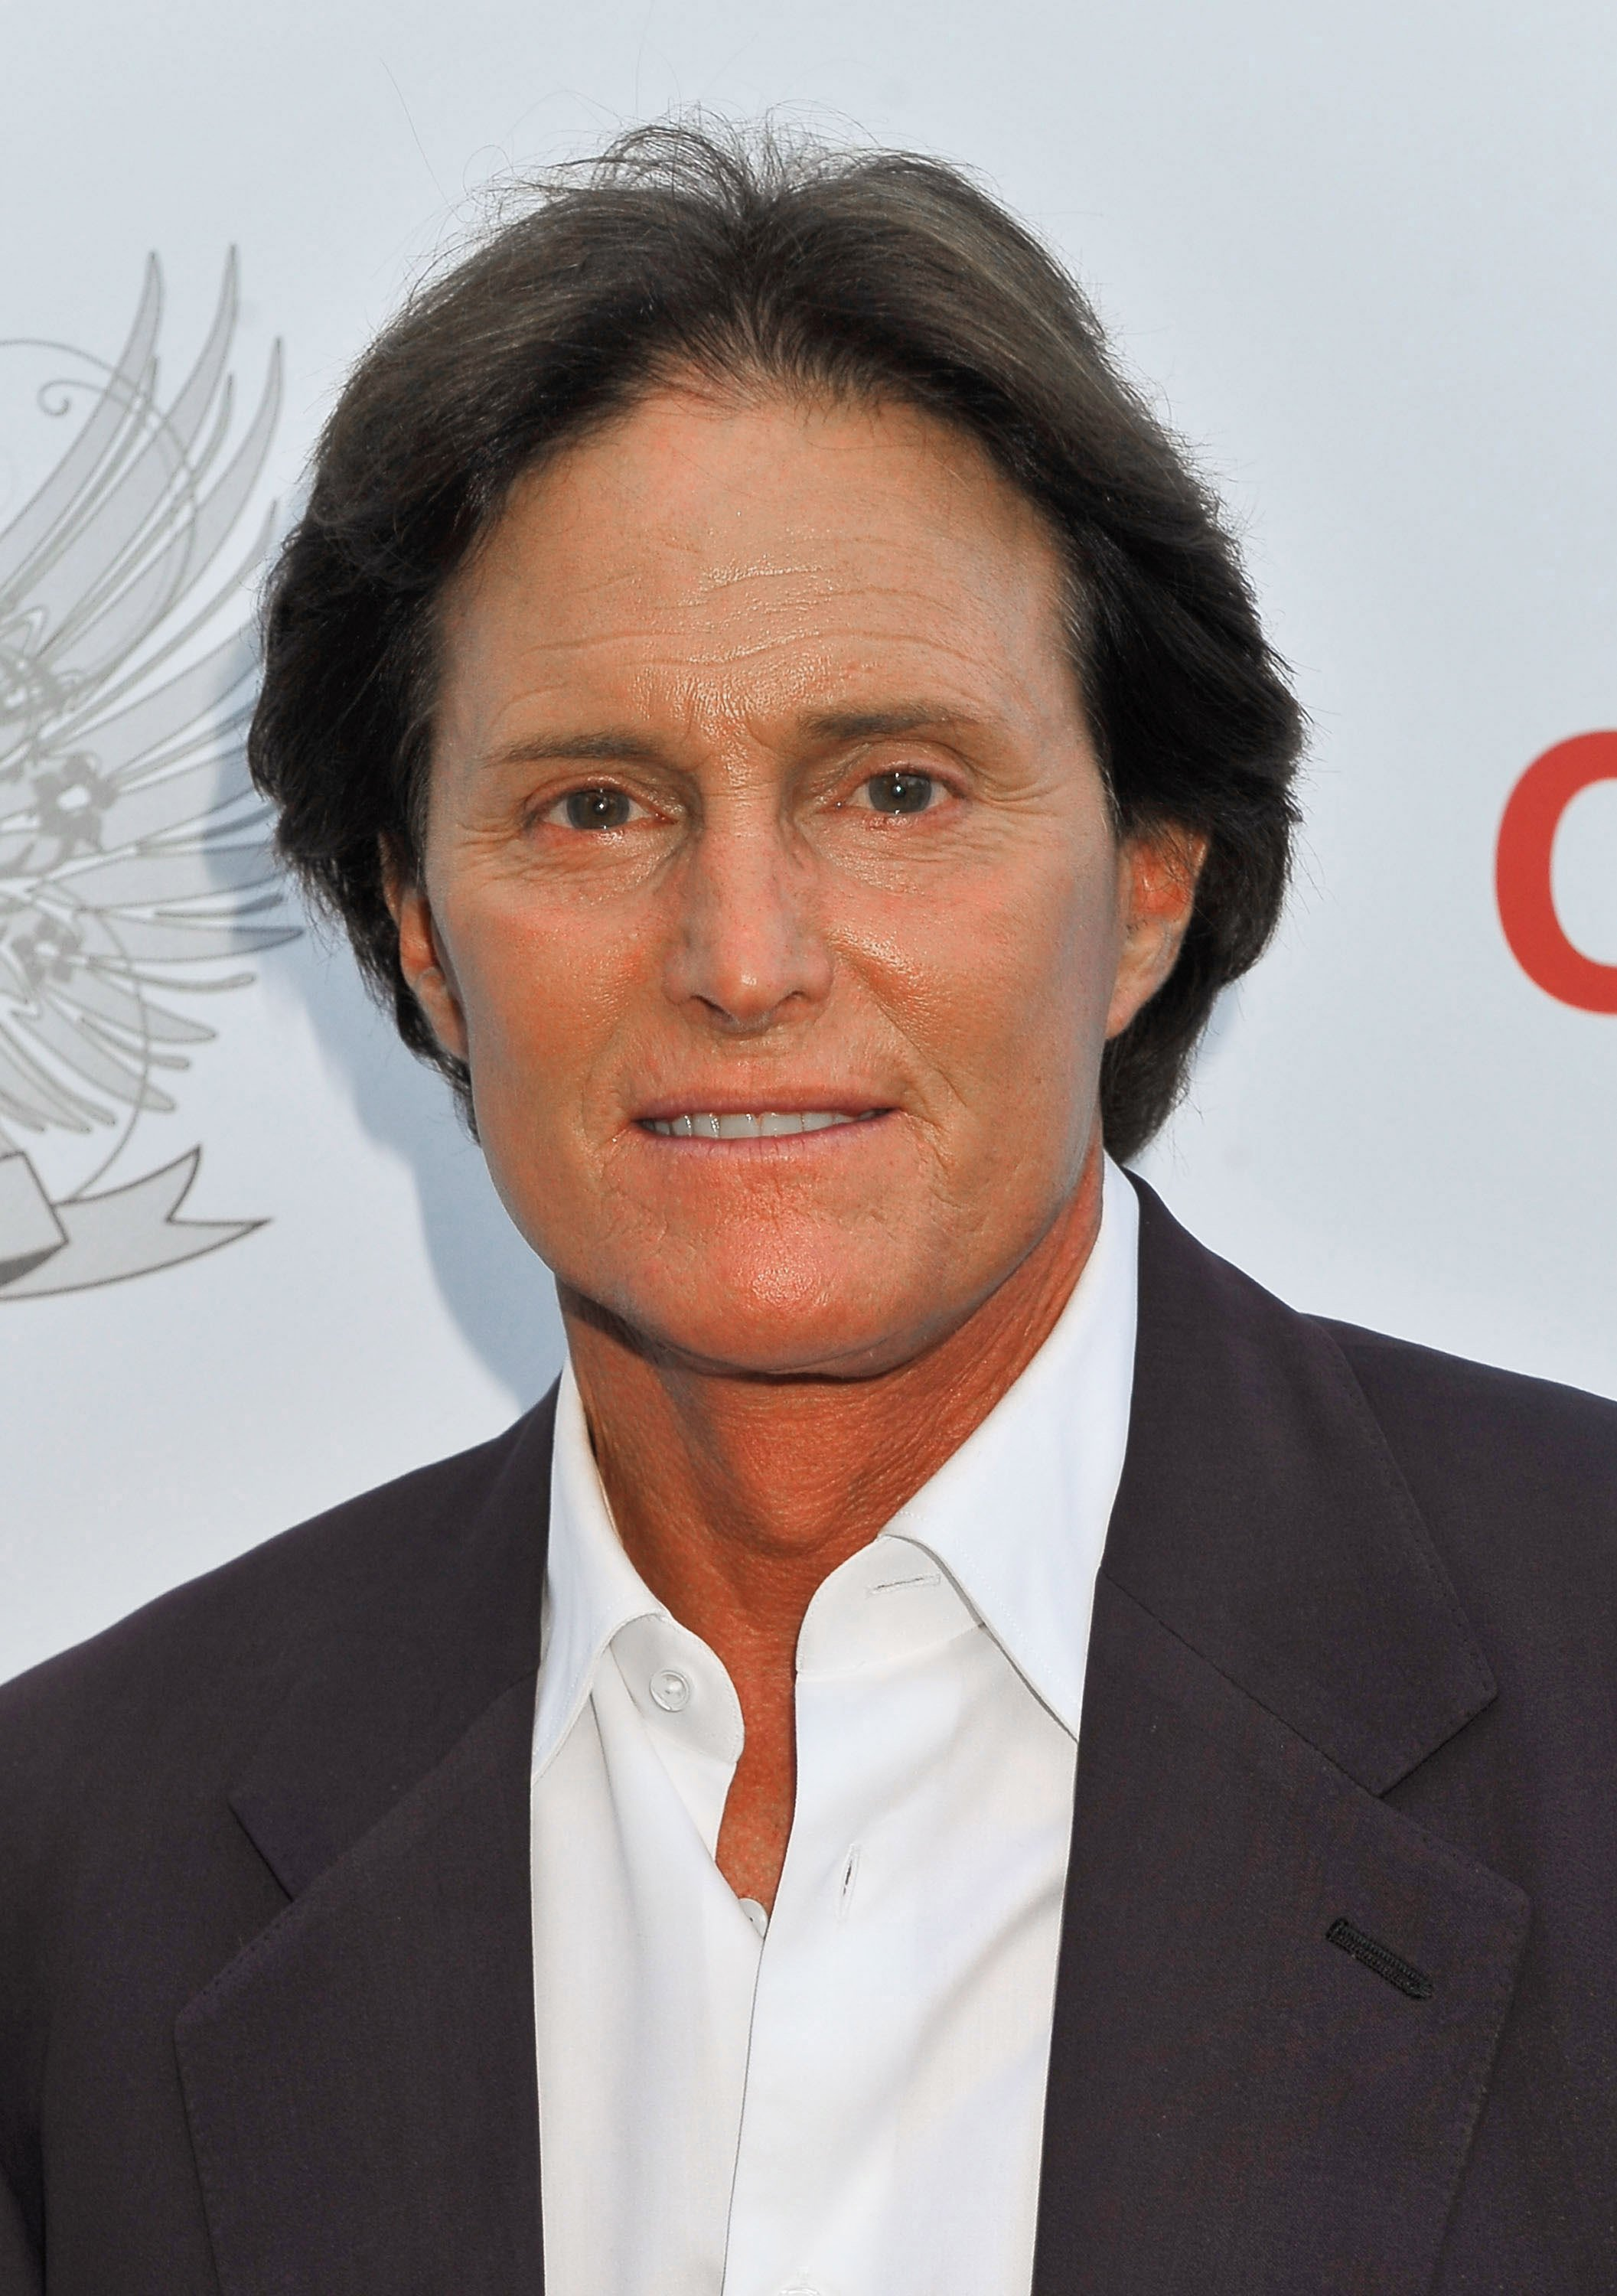 Bruce Jenner arrives at the Aces & Angels Celebrity Poker Party at The Playboy Mansion on July 11, 2009 | Photo: GettyImages